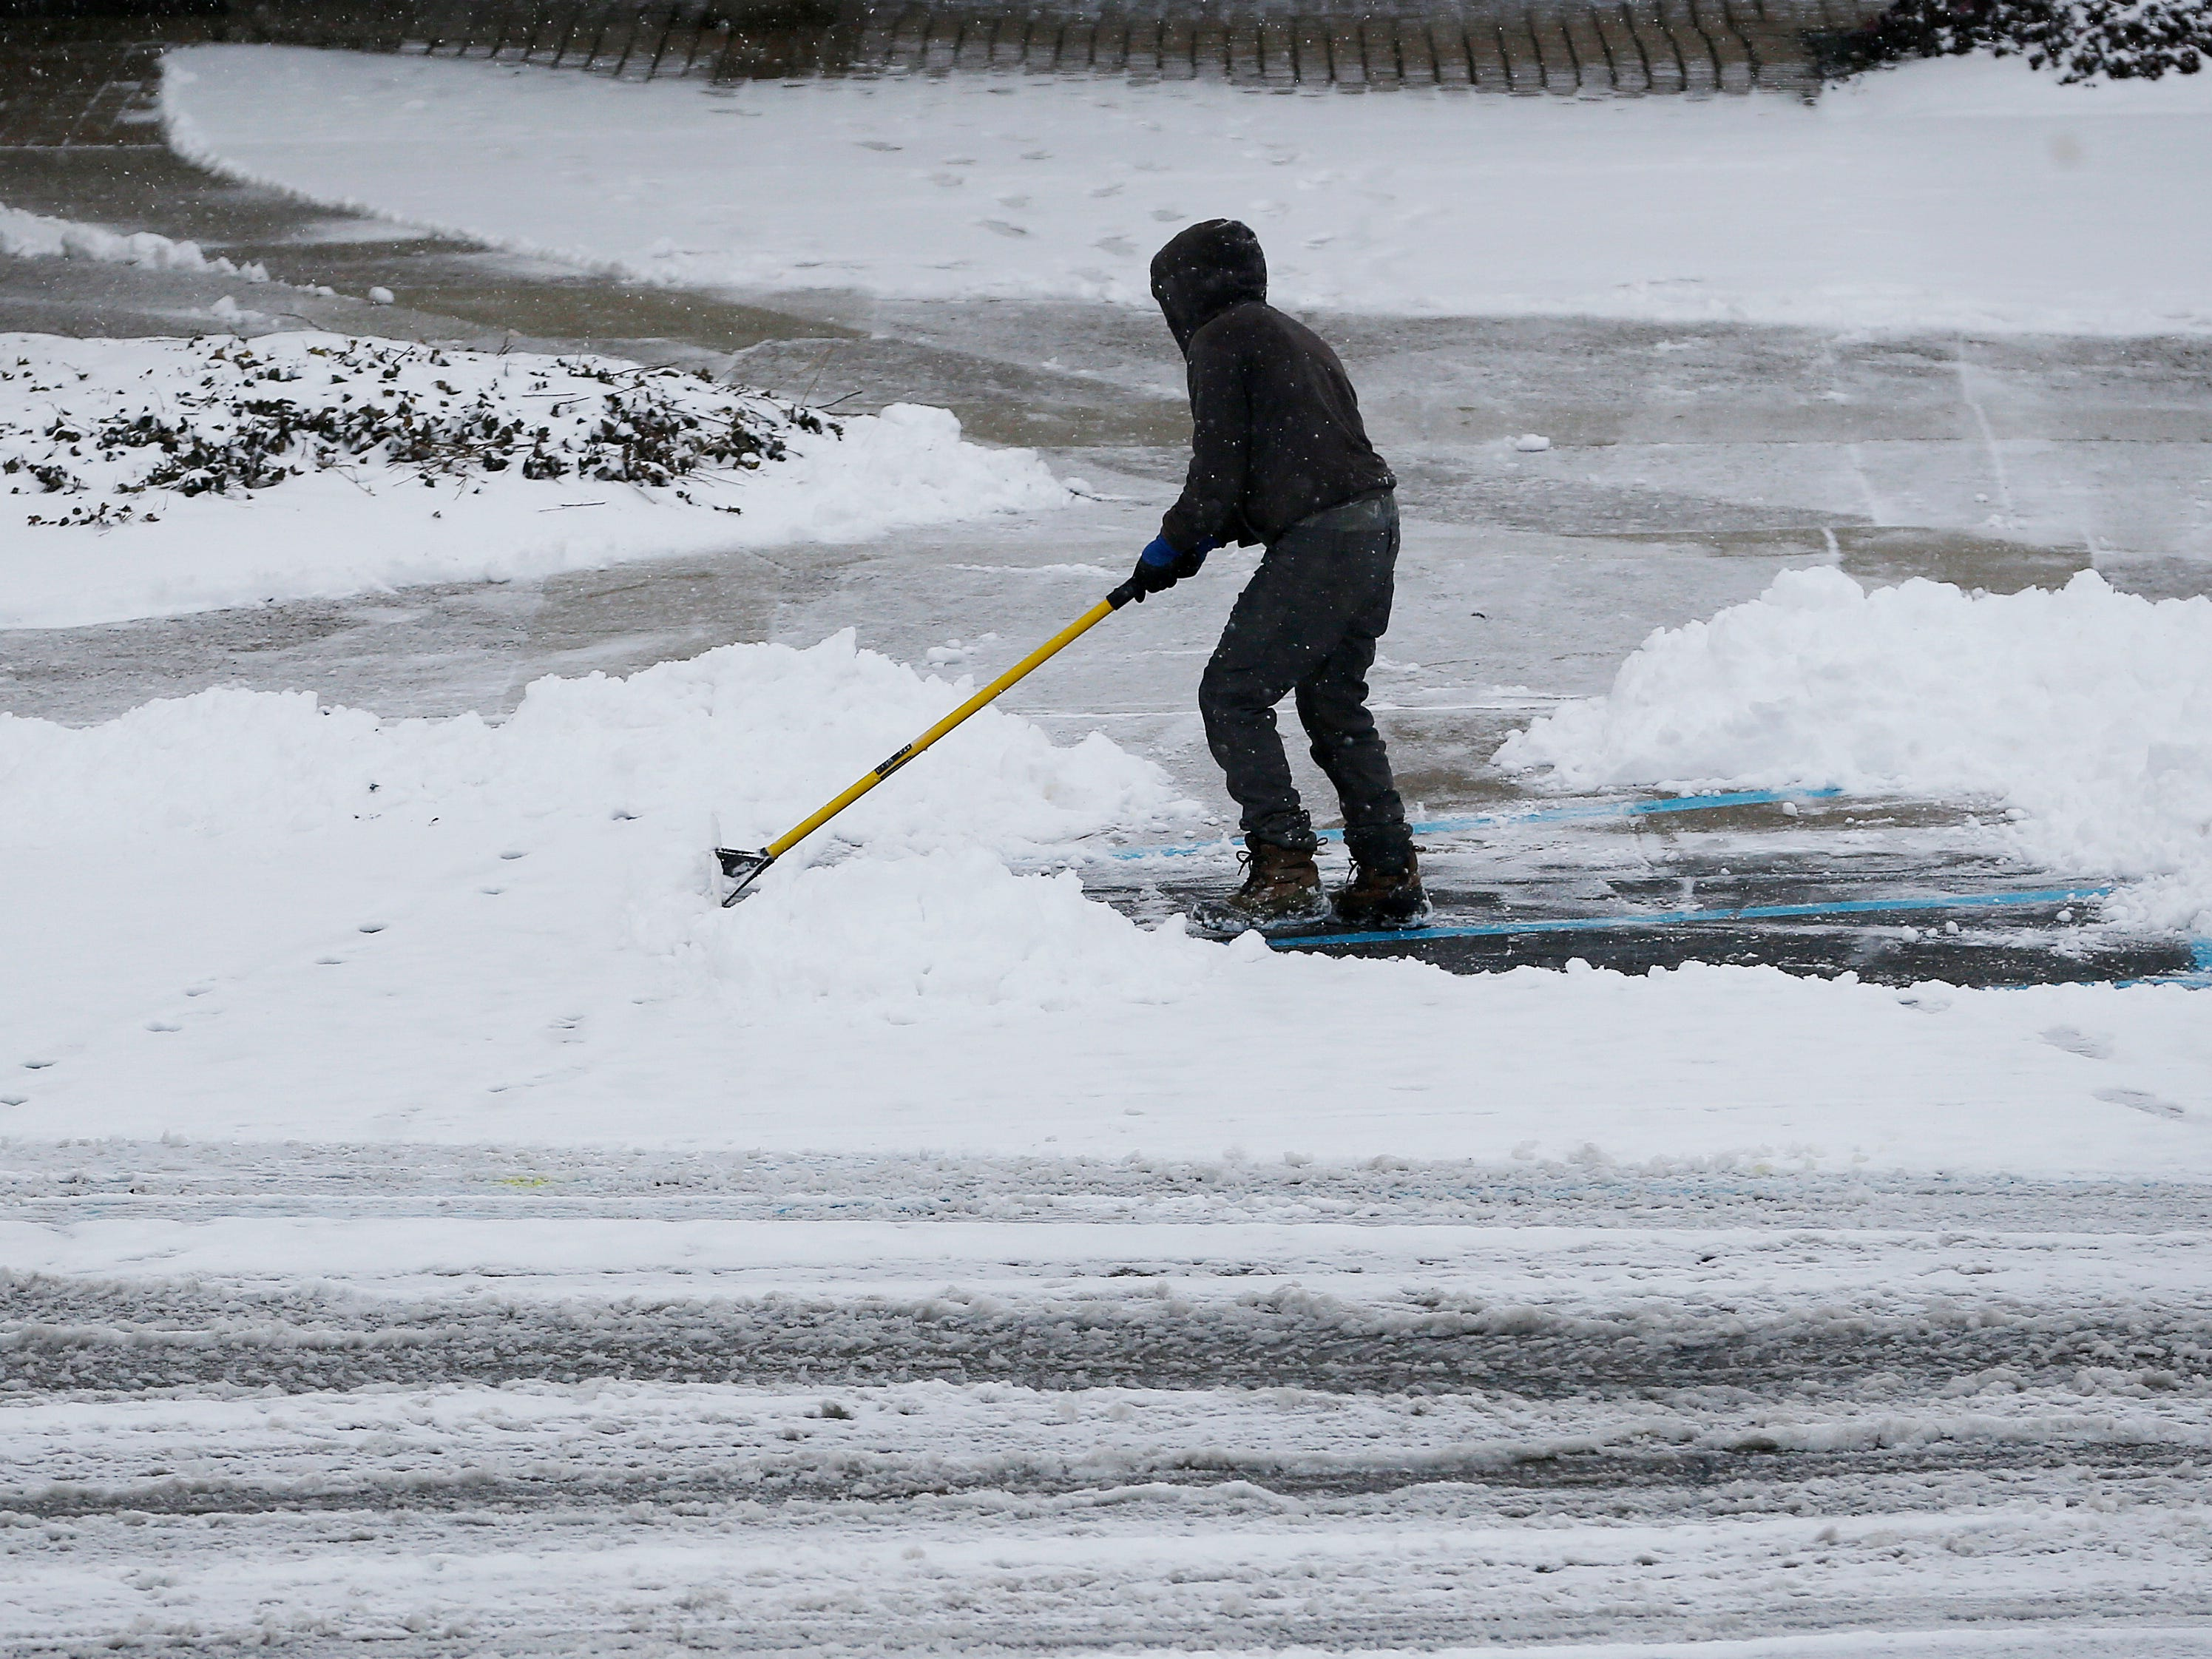 A man shovels as snow continues to fall in Colerain Township, a suburb Cincinnati Saturday Jan. 12, 2019. The National Weather Service cautioned that the accumulation will lead to hazardous travel in the area, recommending travelers stay home if possible until Sunday.